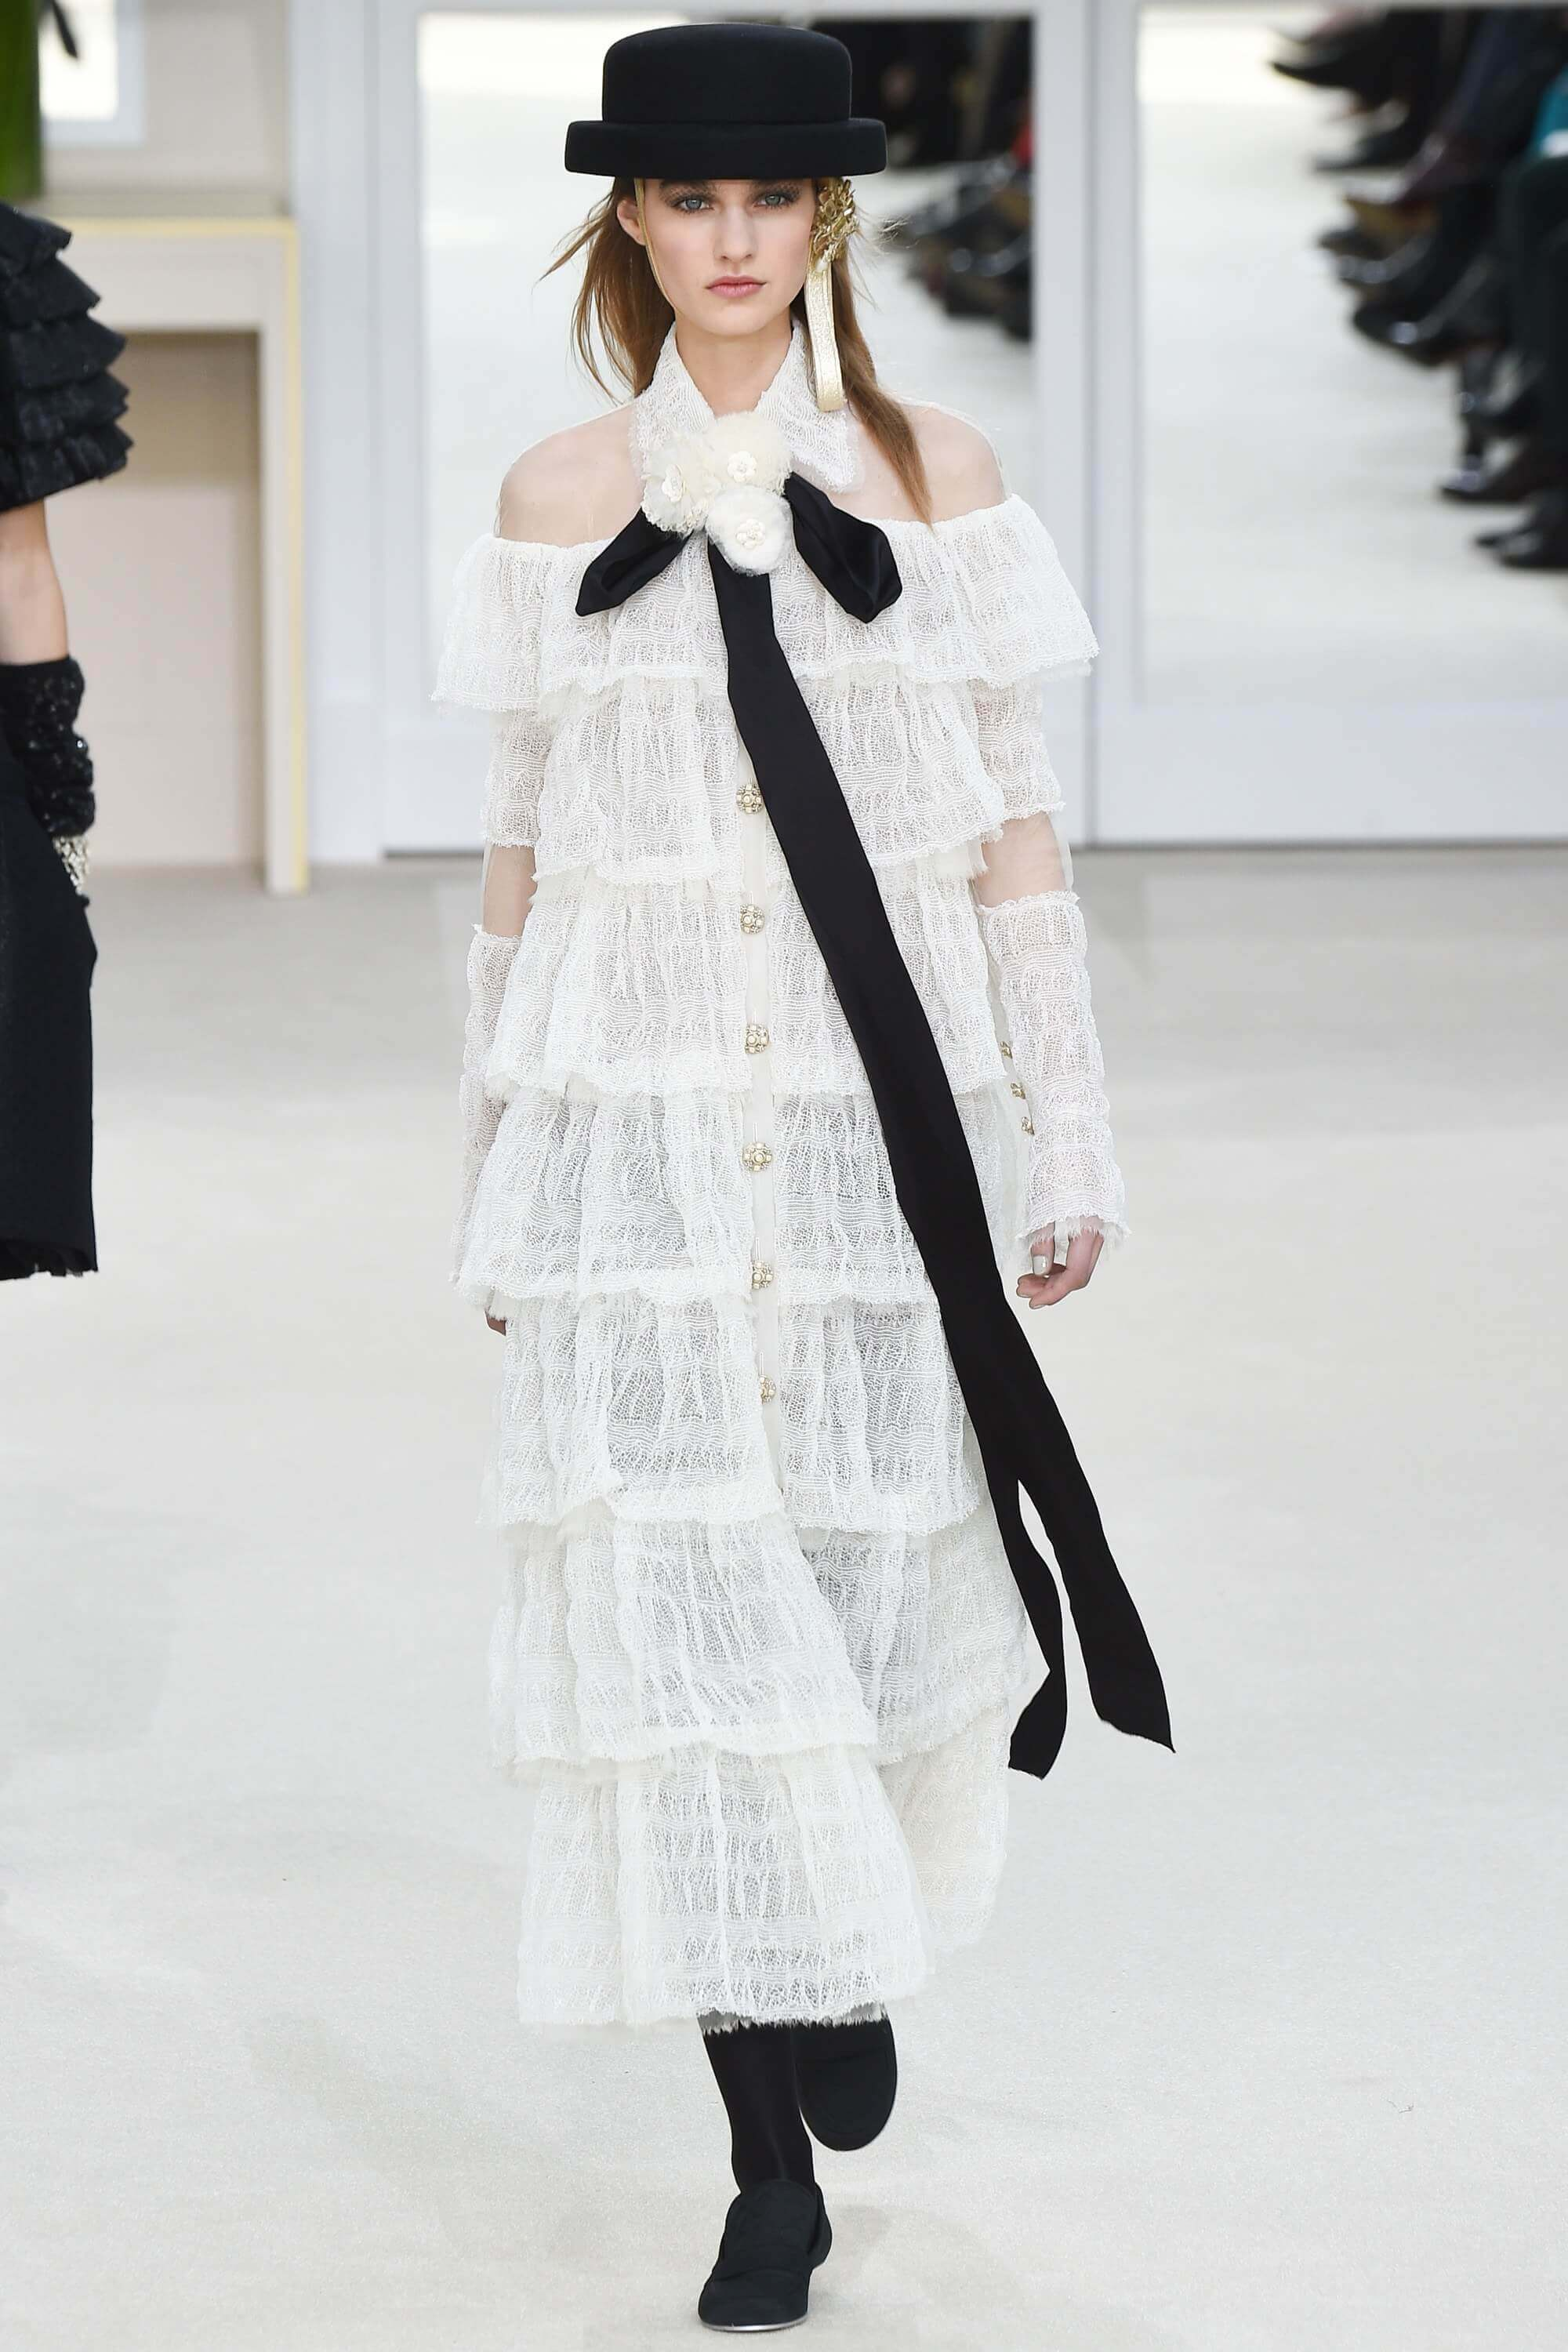 d84391f594e Chanel ready to wear fall 2016 bows trend